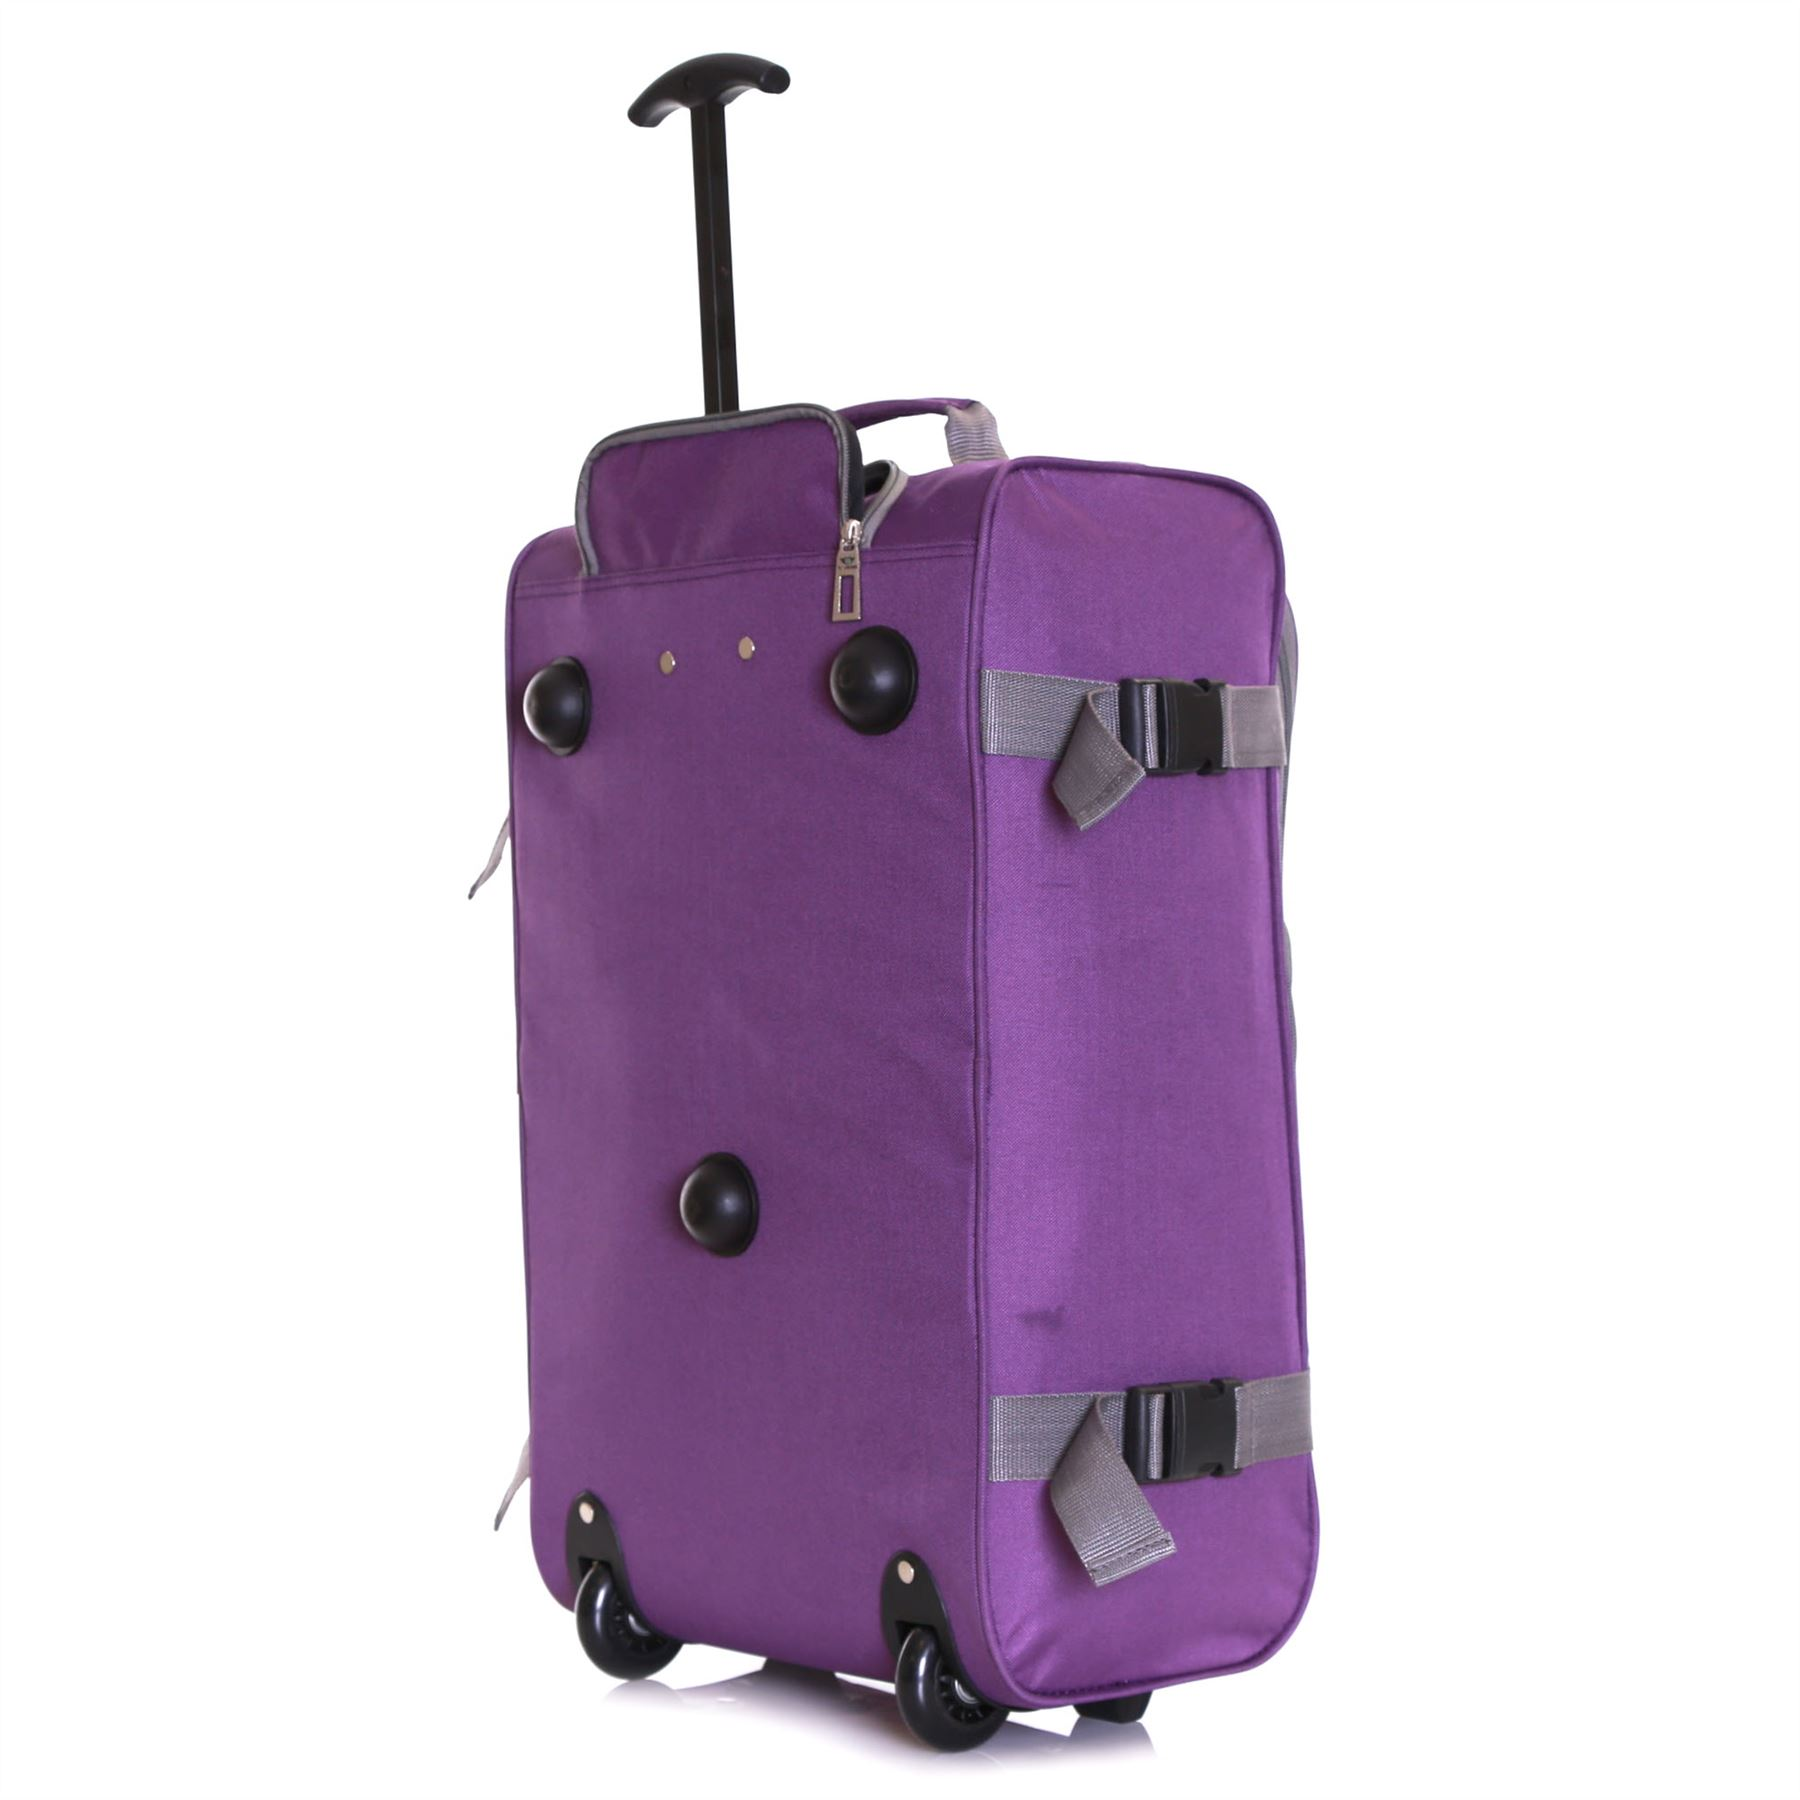 Ryanair-Easyjet-Set-of-2-Cabin-Approved-Hand-Trolley-Suitcases-Luggage-Case-Bags thumbnail 9